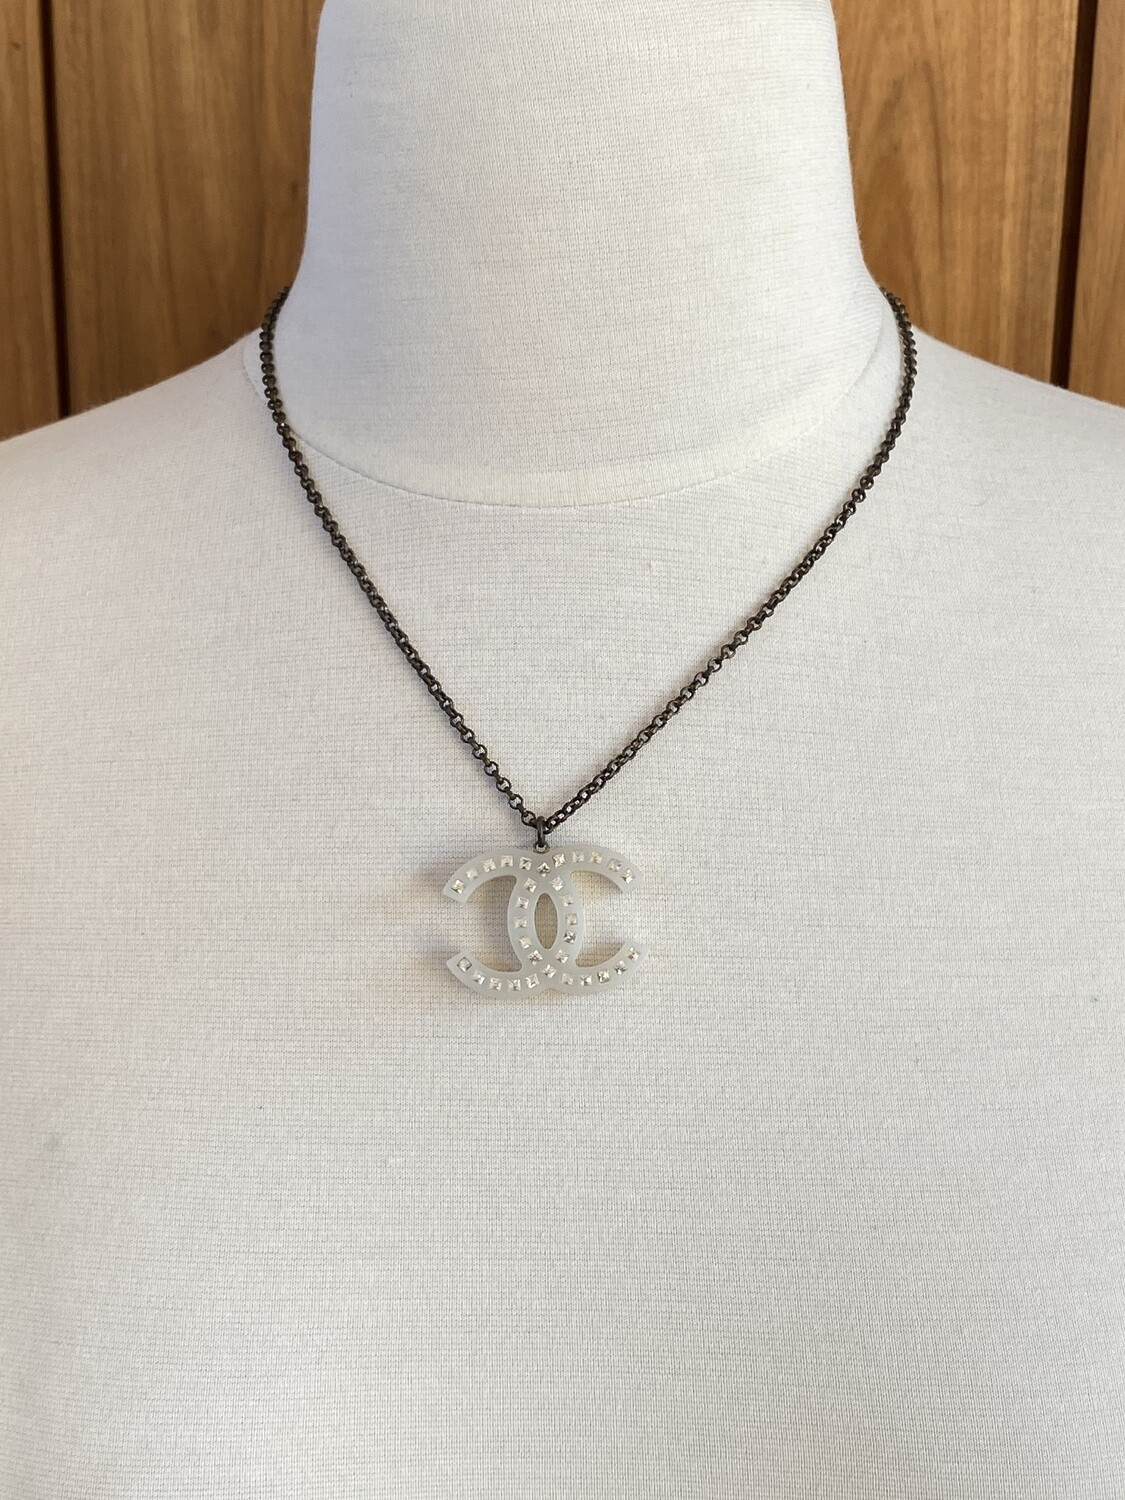 CHANEL LARGE CC LOGO CHARM PENDANT NECKLACE WHITE / CRYSTALS / SILVER